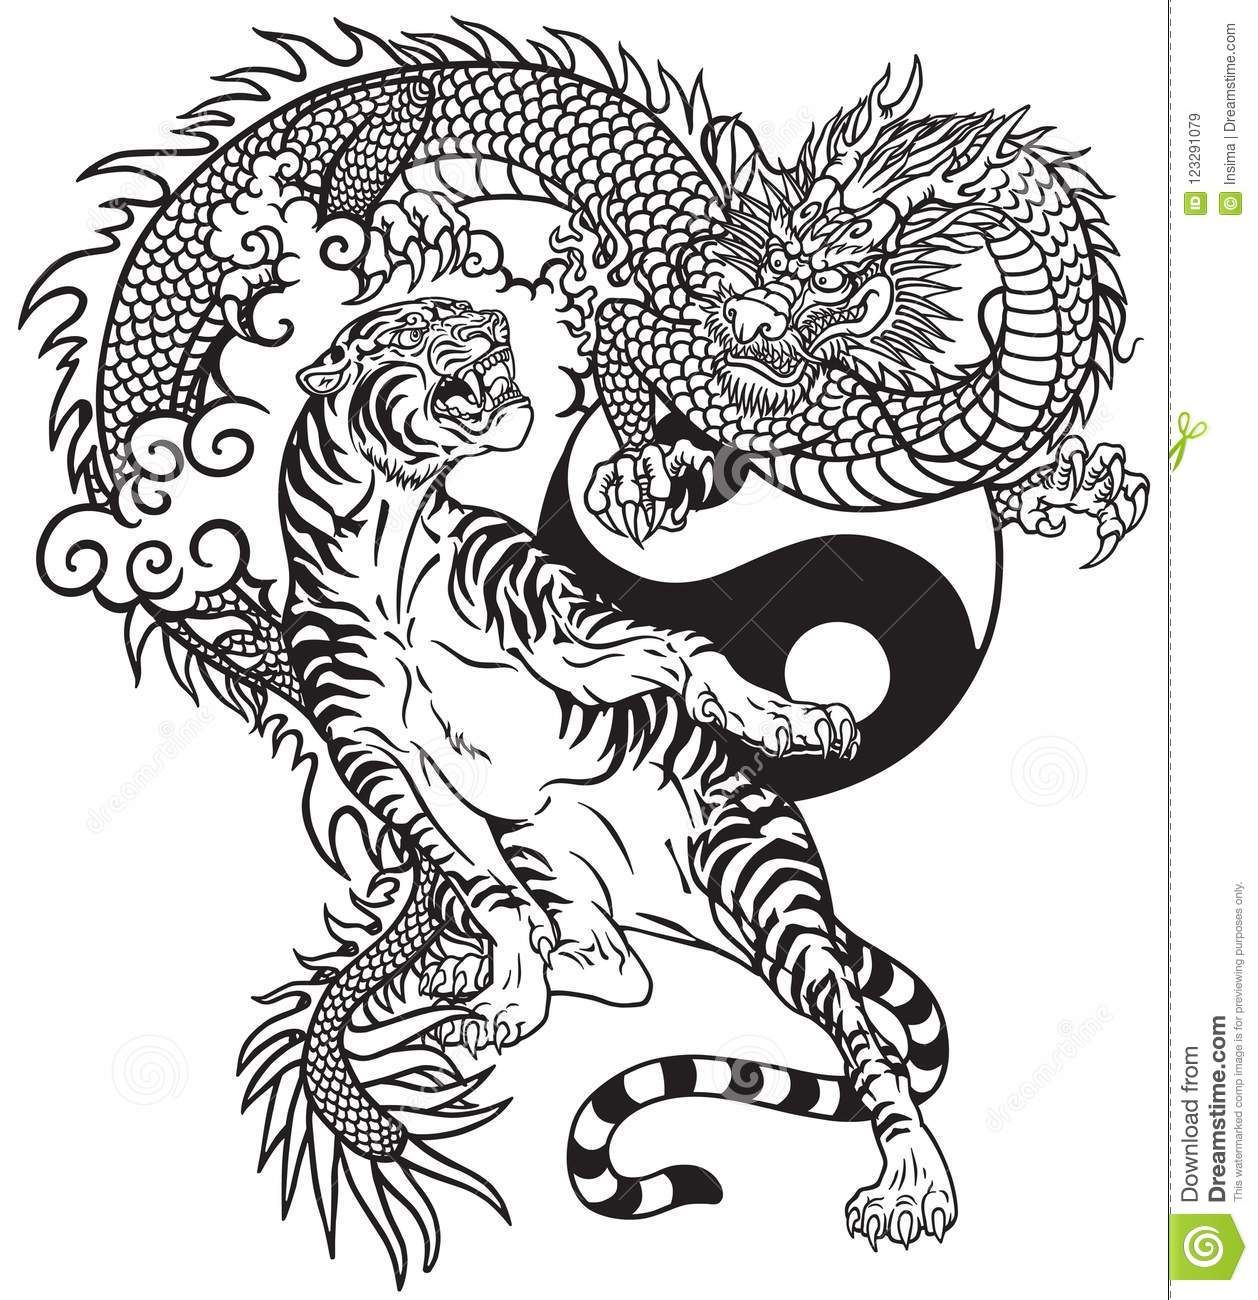 , Chinese Dragon Versus Tiger Black And White Tattoo Stock Vector – Illustration of asia, fantasy: 123291079, My Tattoo Blog 2020, My Tattoo Blog 2020